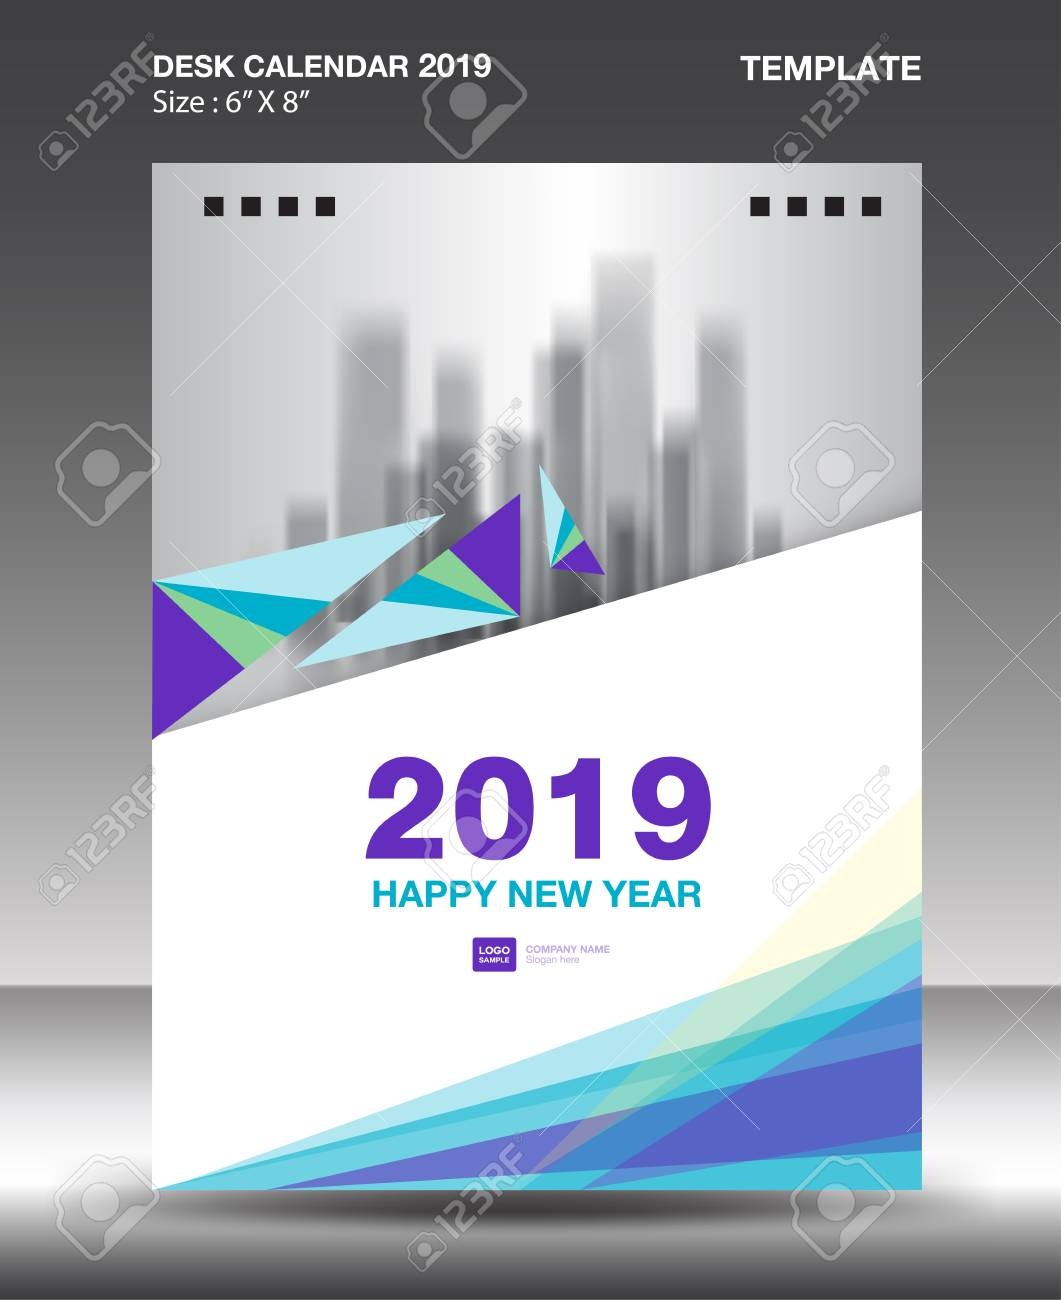 Cover Desk Calendar 2019 Design Template Flyer Template Ads Royalty Free Cliparts Vectors And Stock Illustration Image 111516480